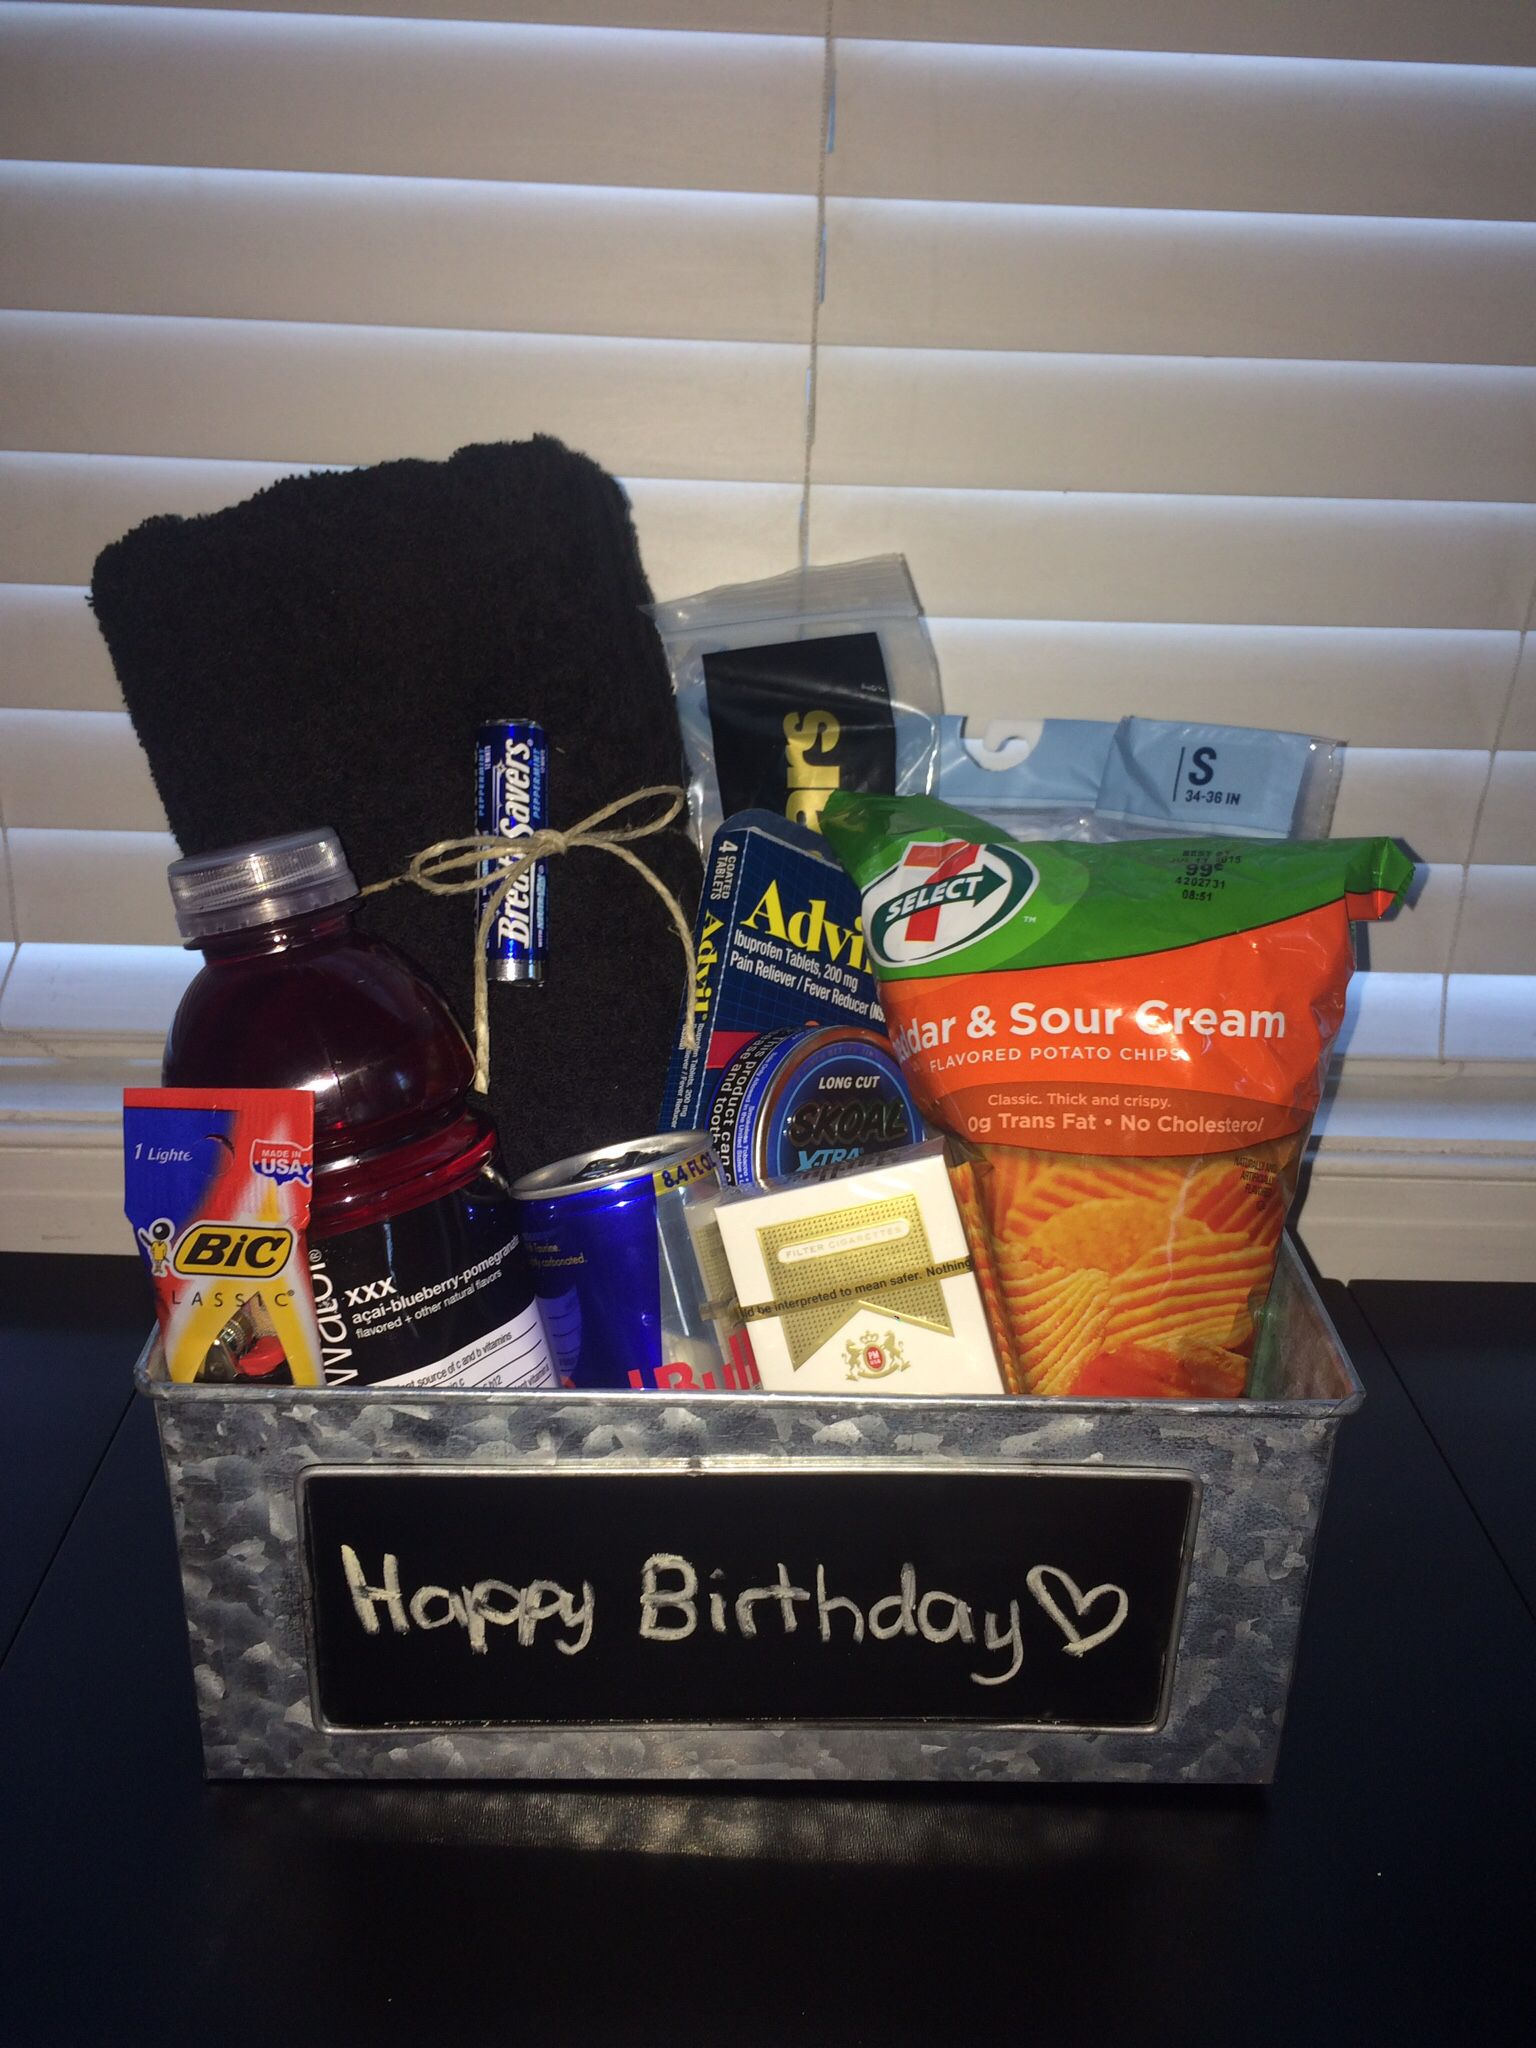 Birthday basket I made for my boyfriend with all his